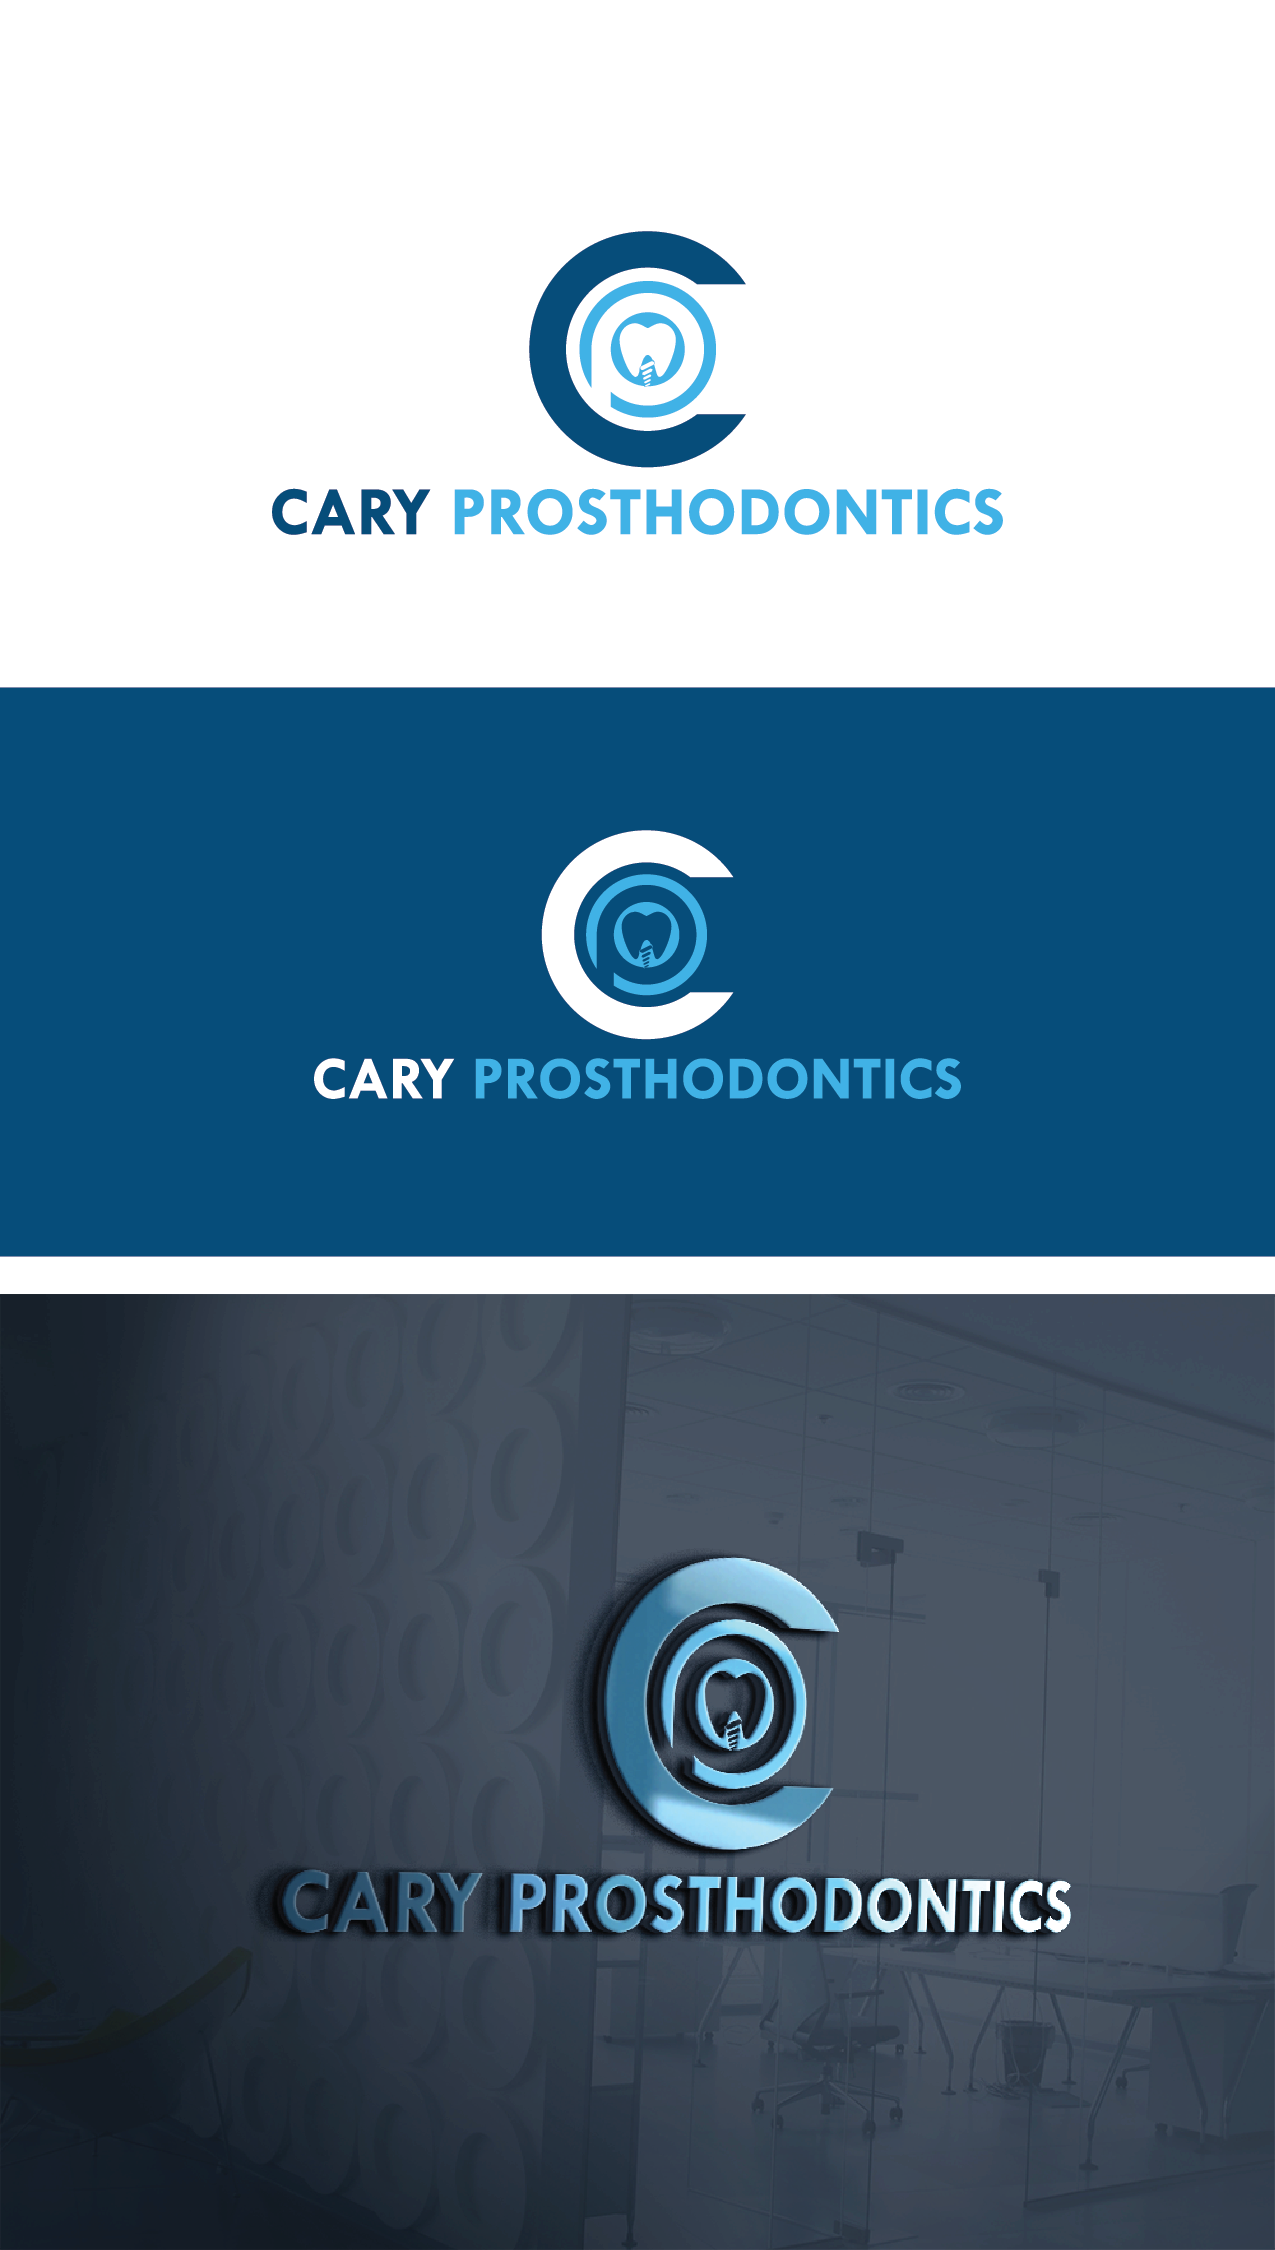 Logo Design by Private User - Entry No. 56 in the Logo Design Contest Cary Prosthodontics Logo Design.